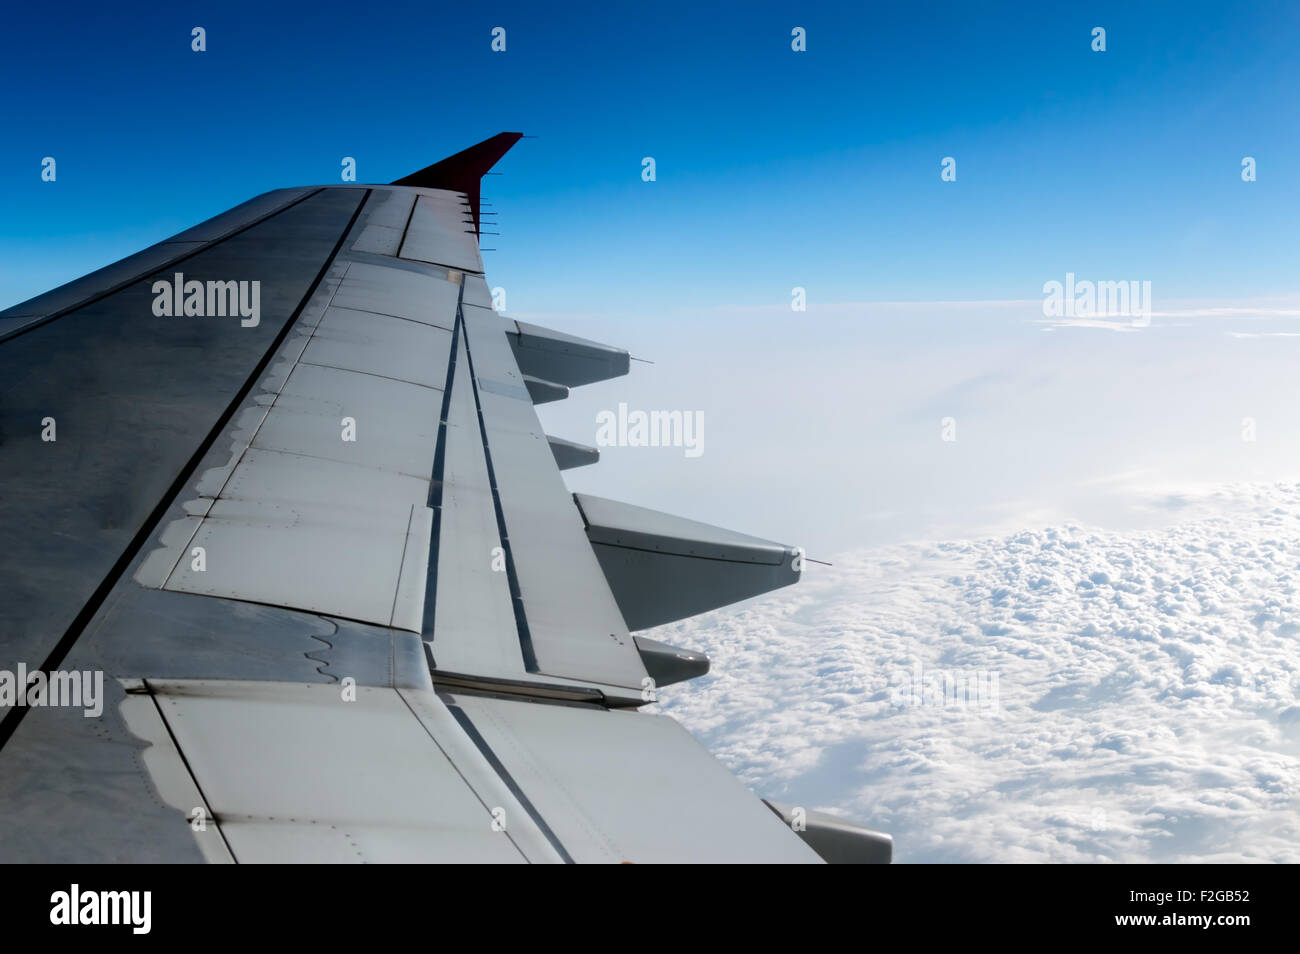 cloudy sky and airplane wing as seen through window of an aircraft. - Stock Image